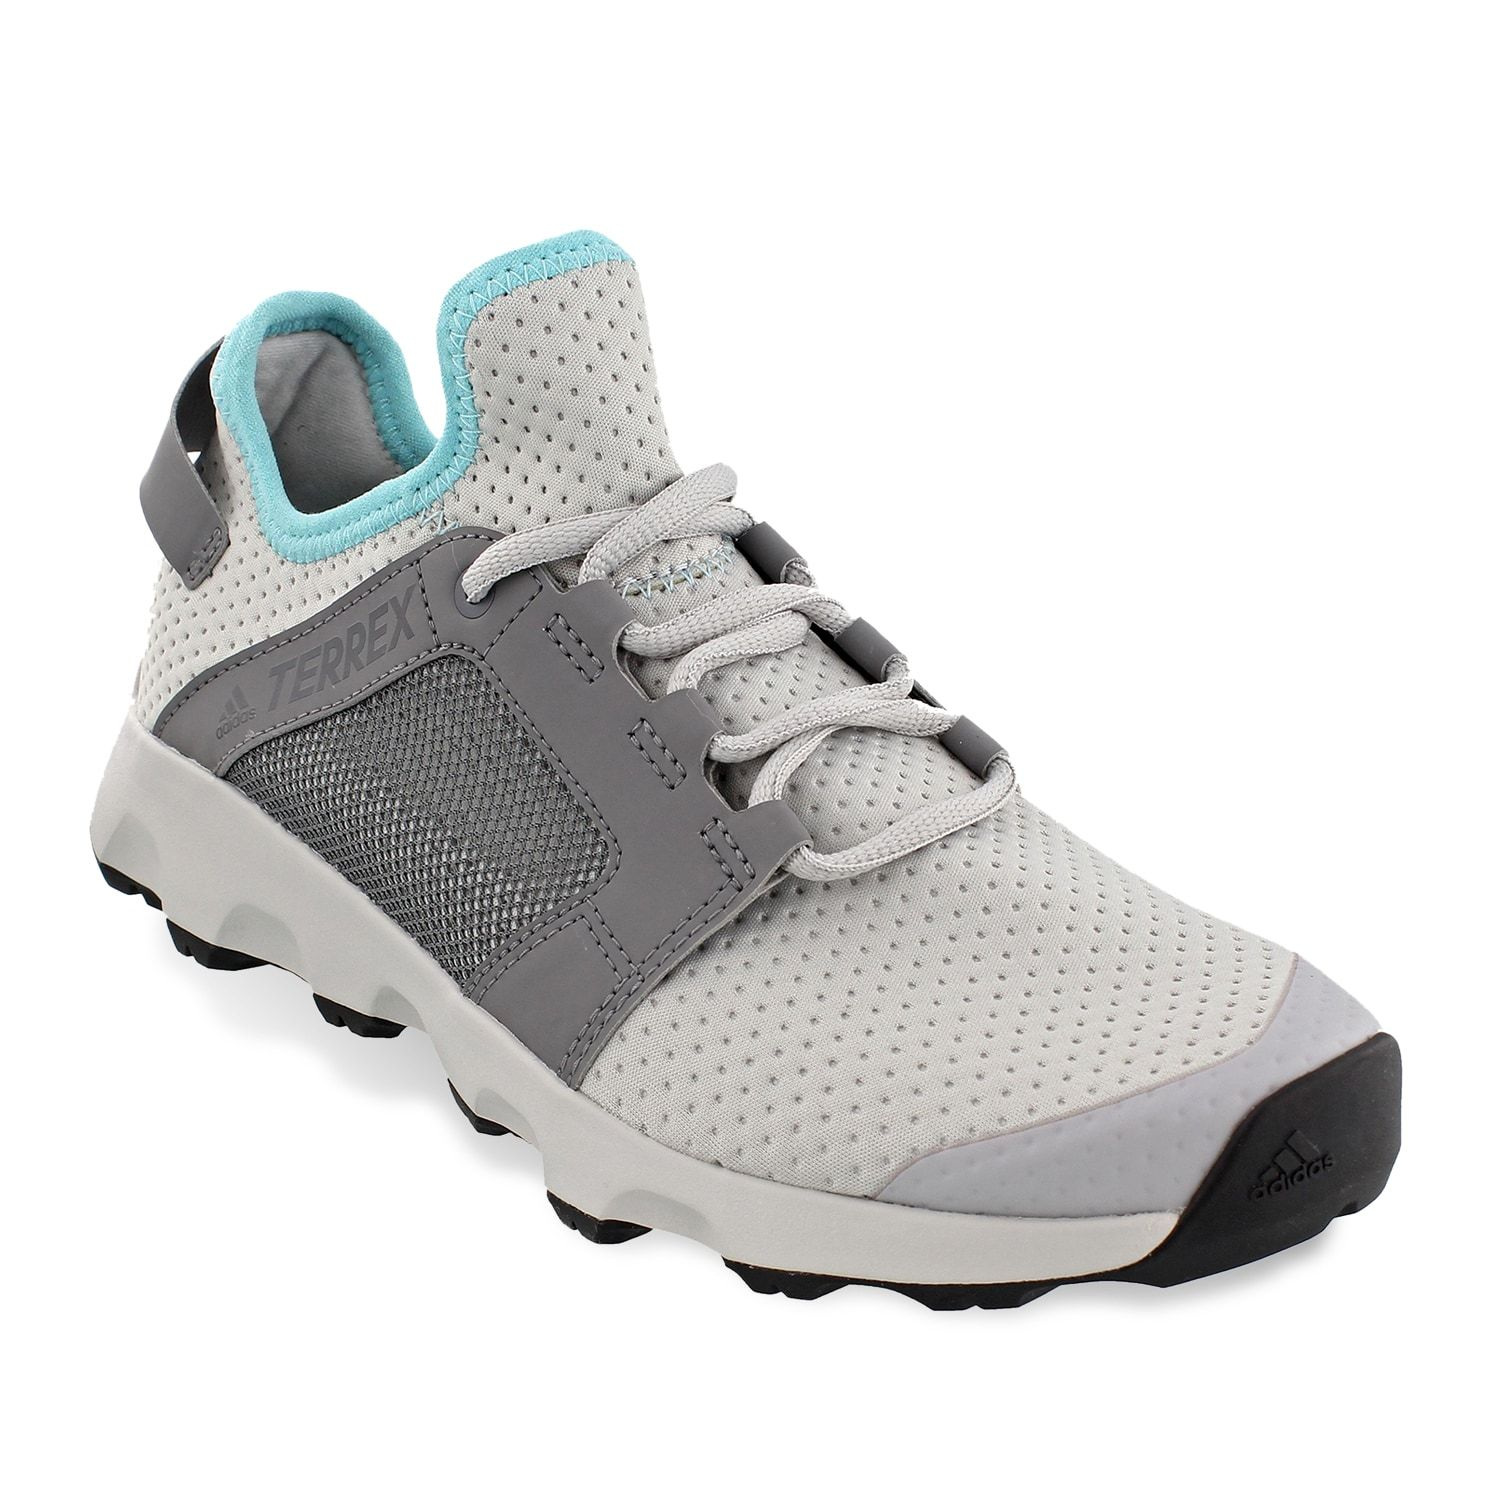 adidas Outdoor Terrex Voyager ... DLX Women's Water-Resistant Hiking Shoes quality free shipping pay with paypal cheap online outlet Cheapest sale best place discount amazing price 6m4lhWLHA